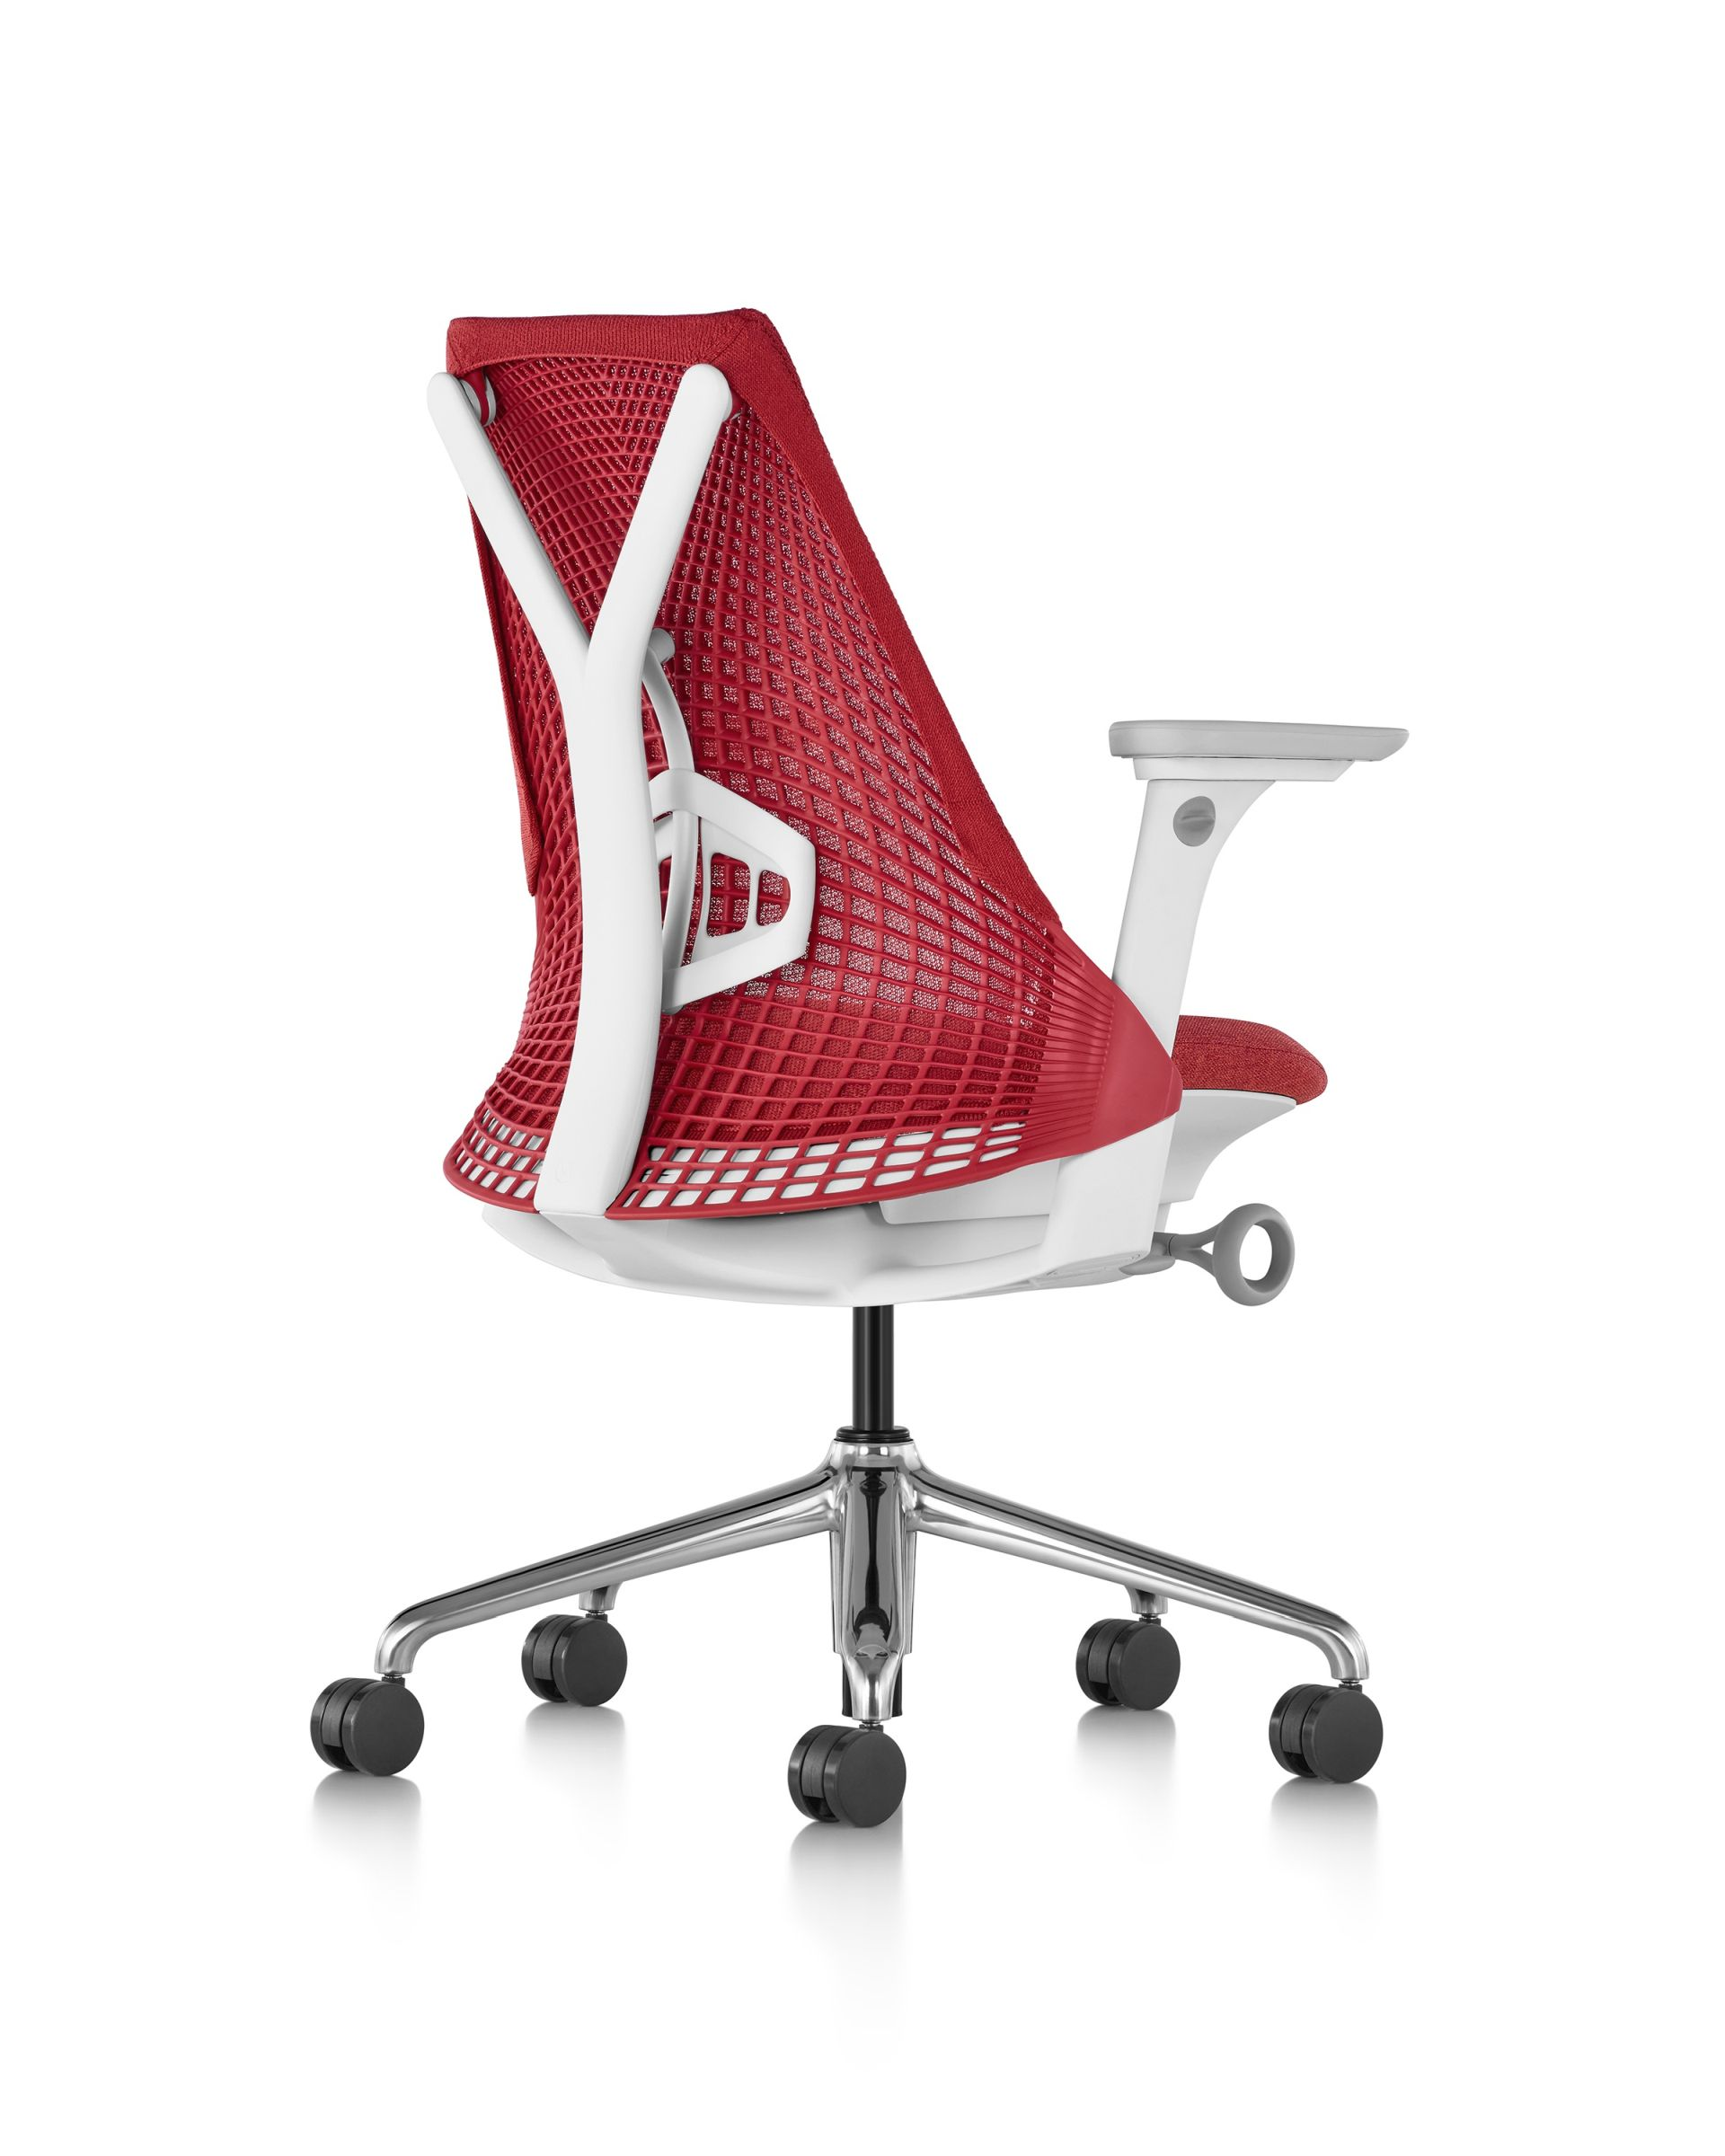 sayl chair review red kitchen chairs love that design